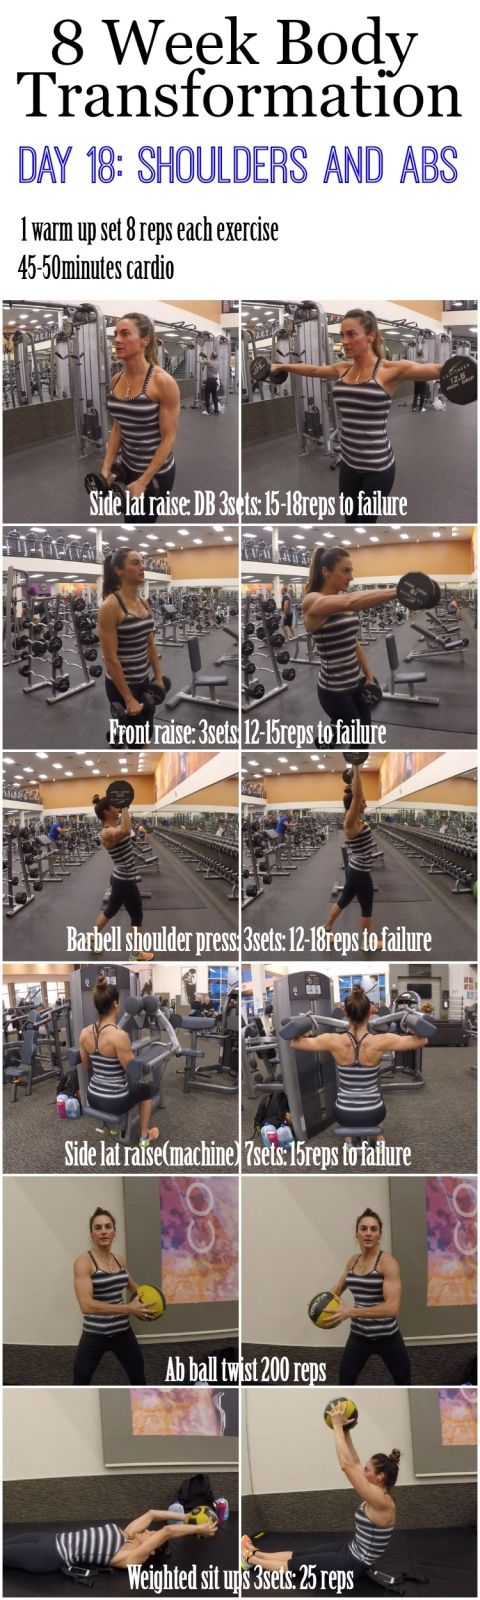 Day_18_shoulders_abs_BLOG